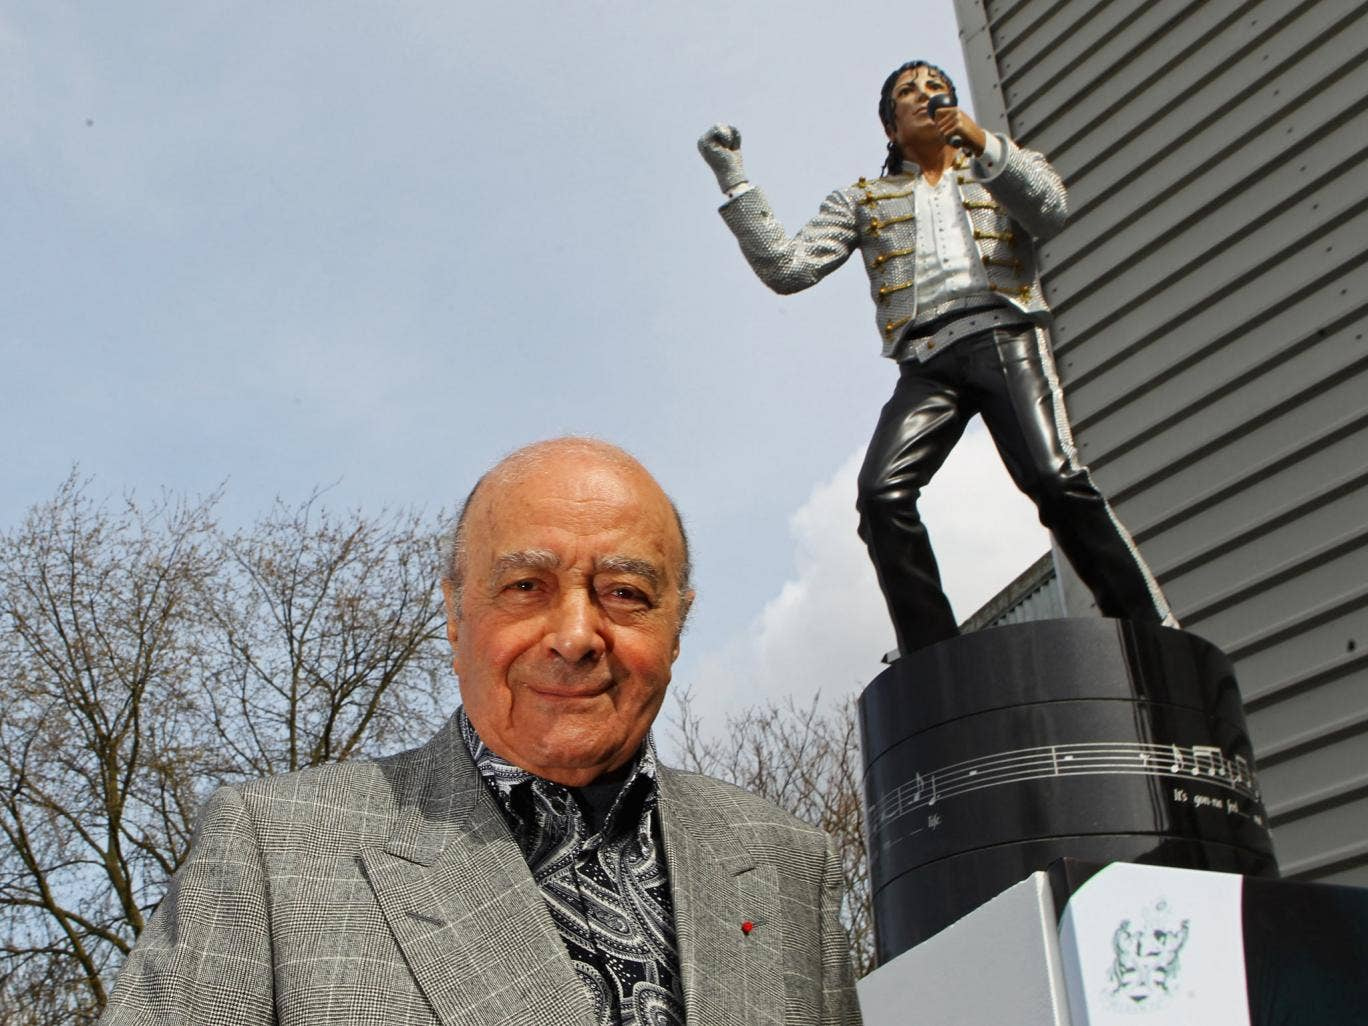 Mohamed Al Fayed unveils a statue in tribute to Michael Jackson